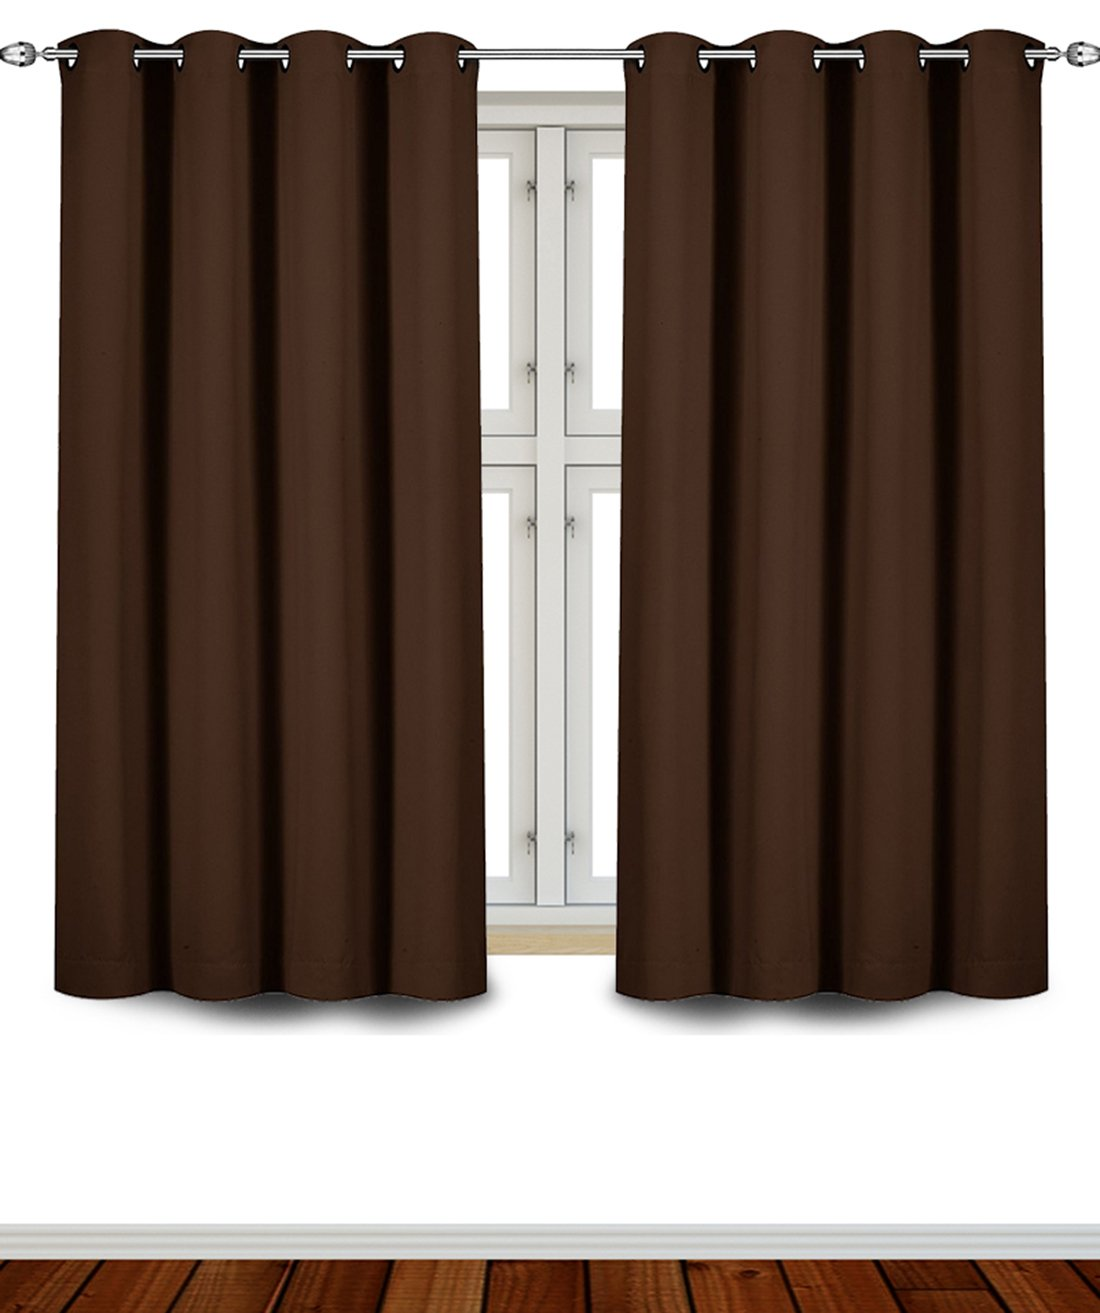 Utopia Bedding Grommet Top Thermal Insulated Blackout Curtains, 2 Panels, 52 x 63 Inch, Chocolate